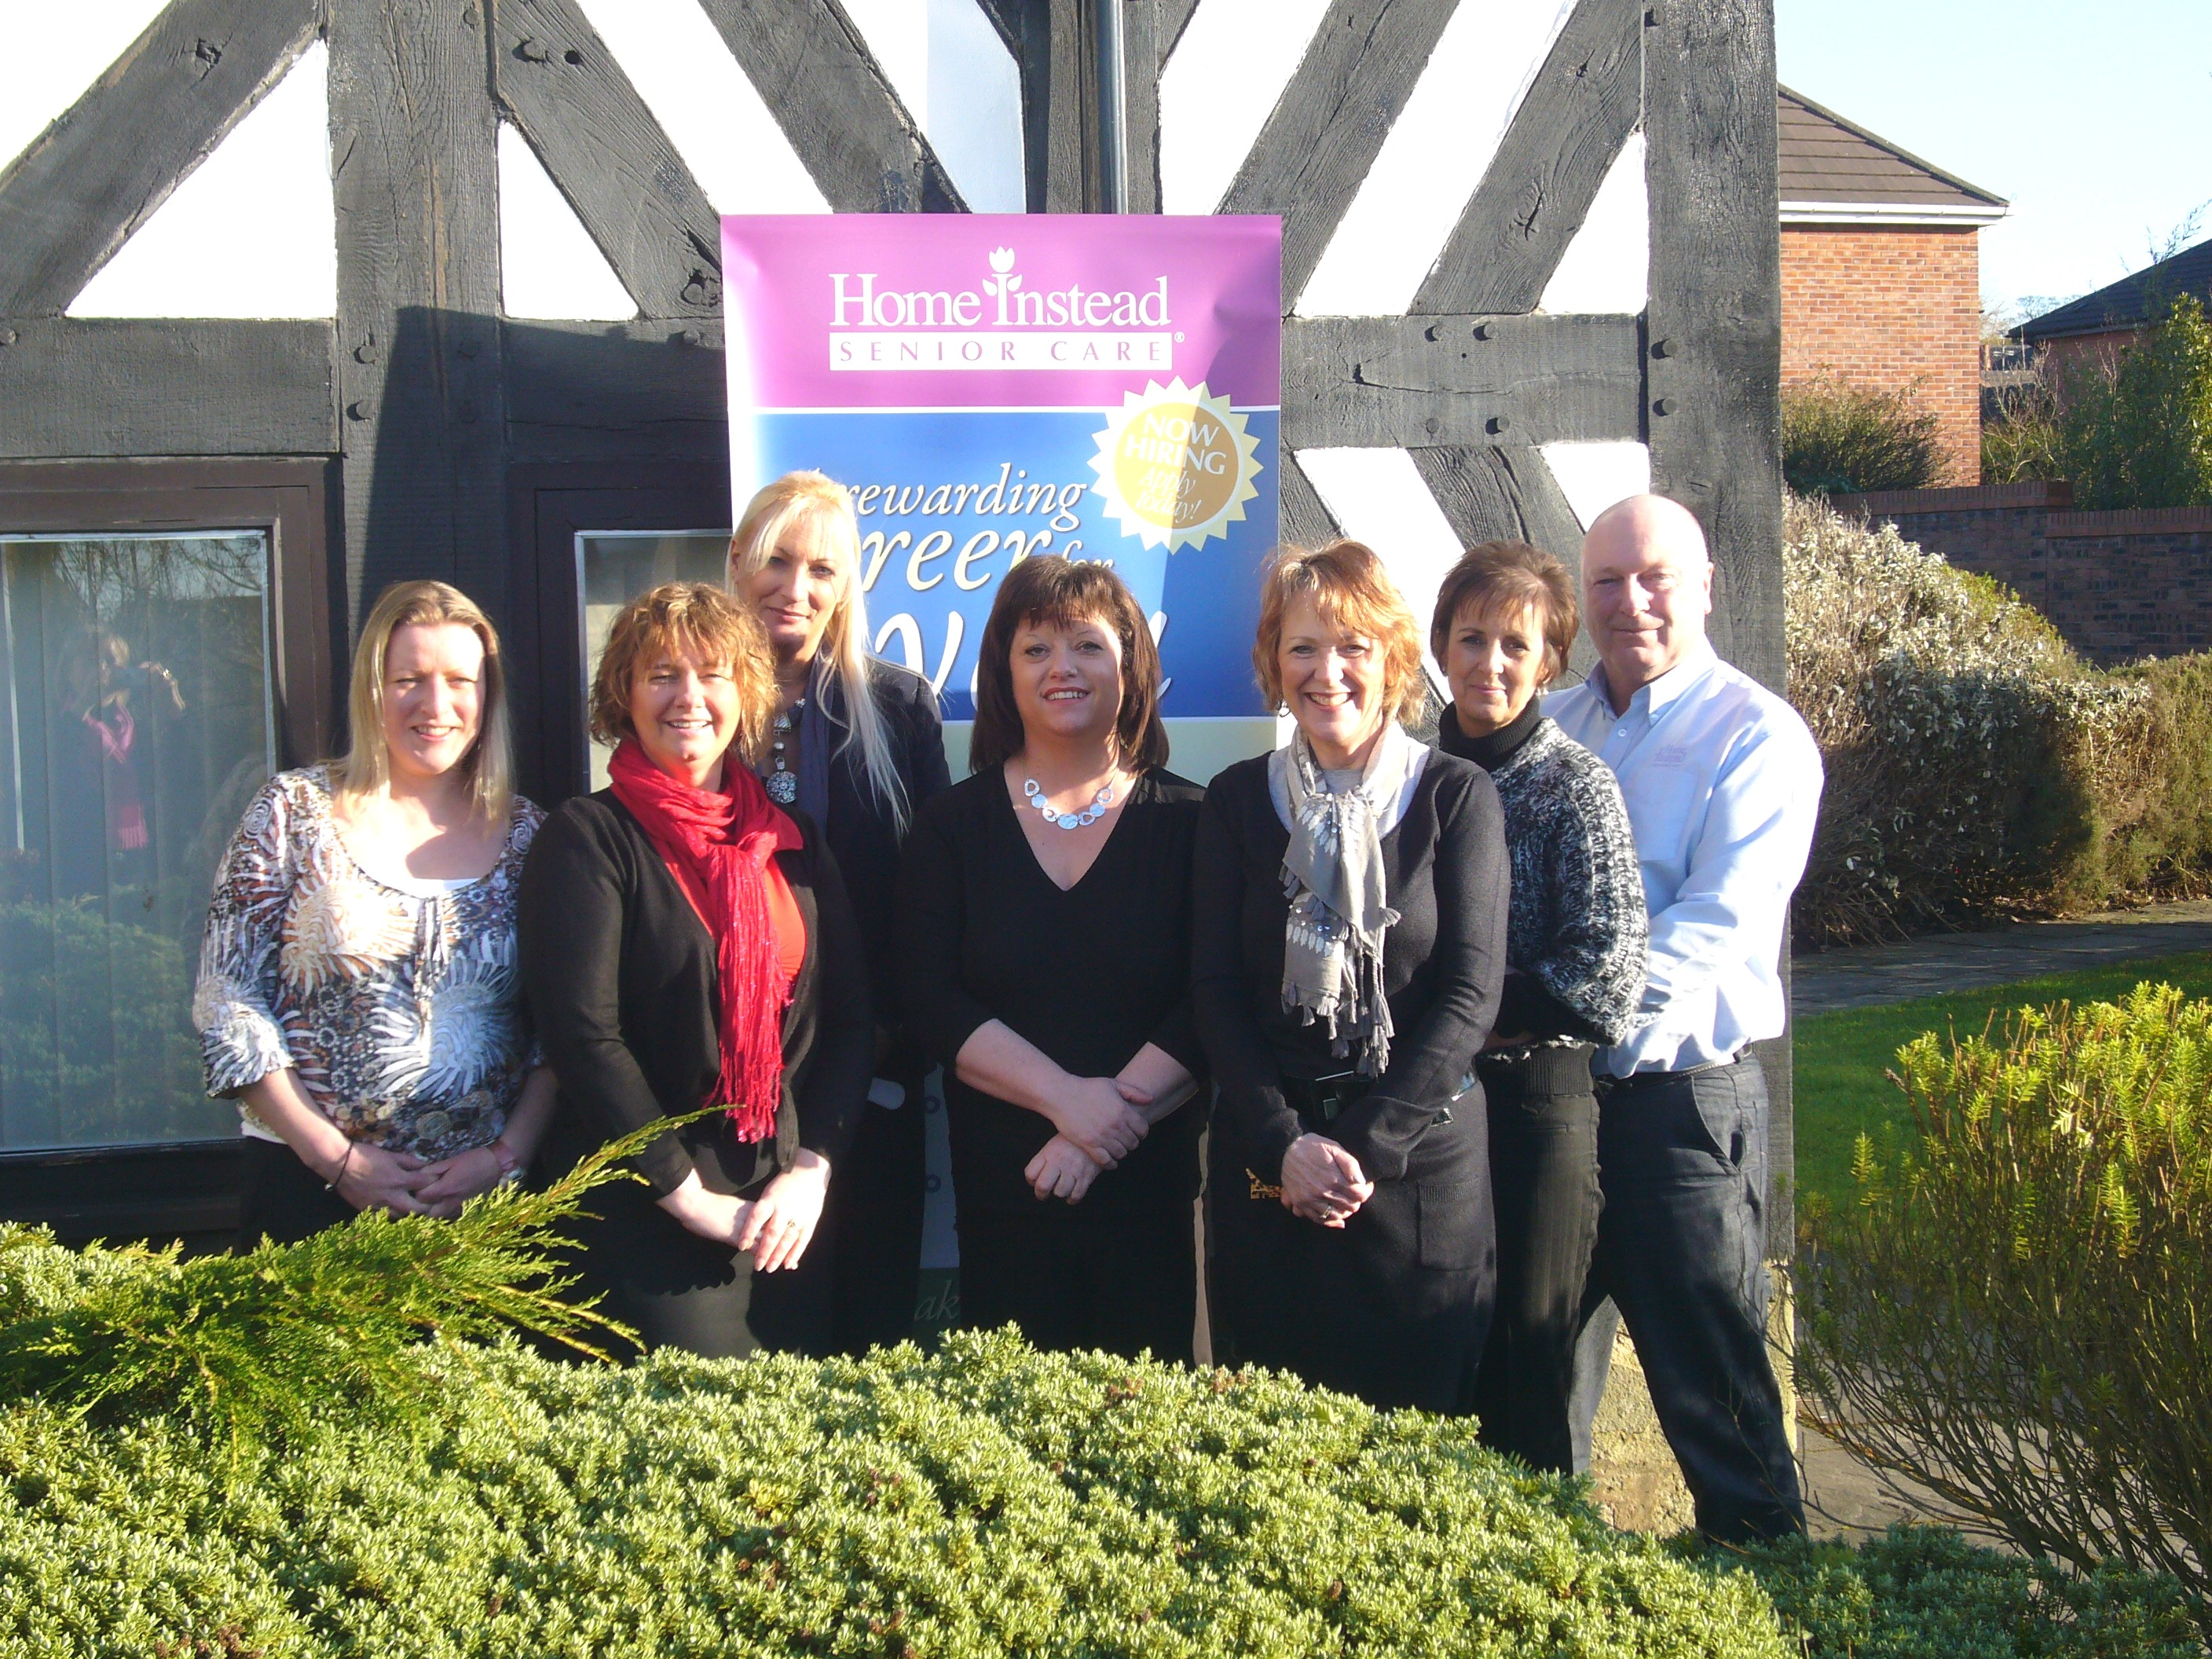 Home Instead Senior Care Macclesfield office team at their new premises at Tytherington Old Hall